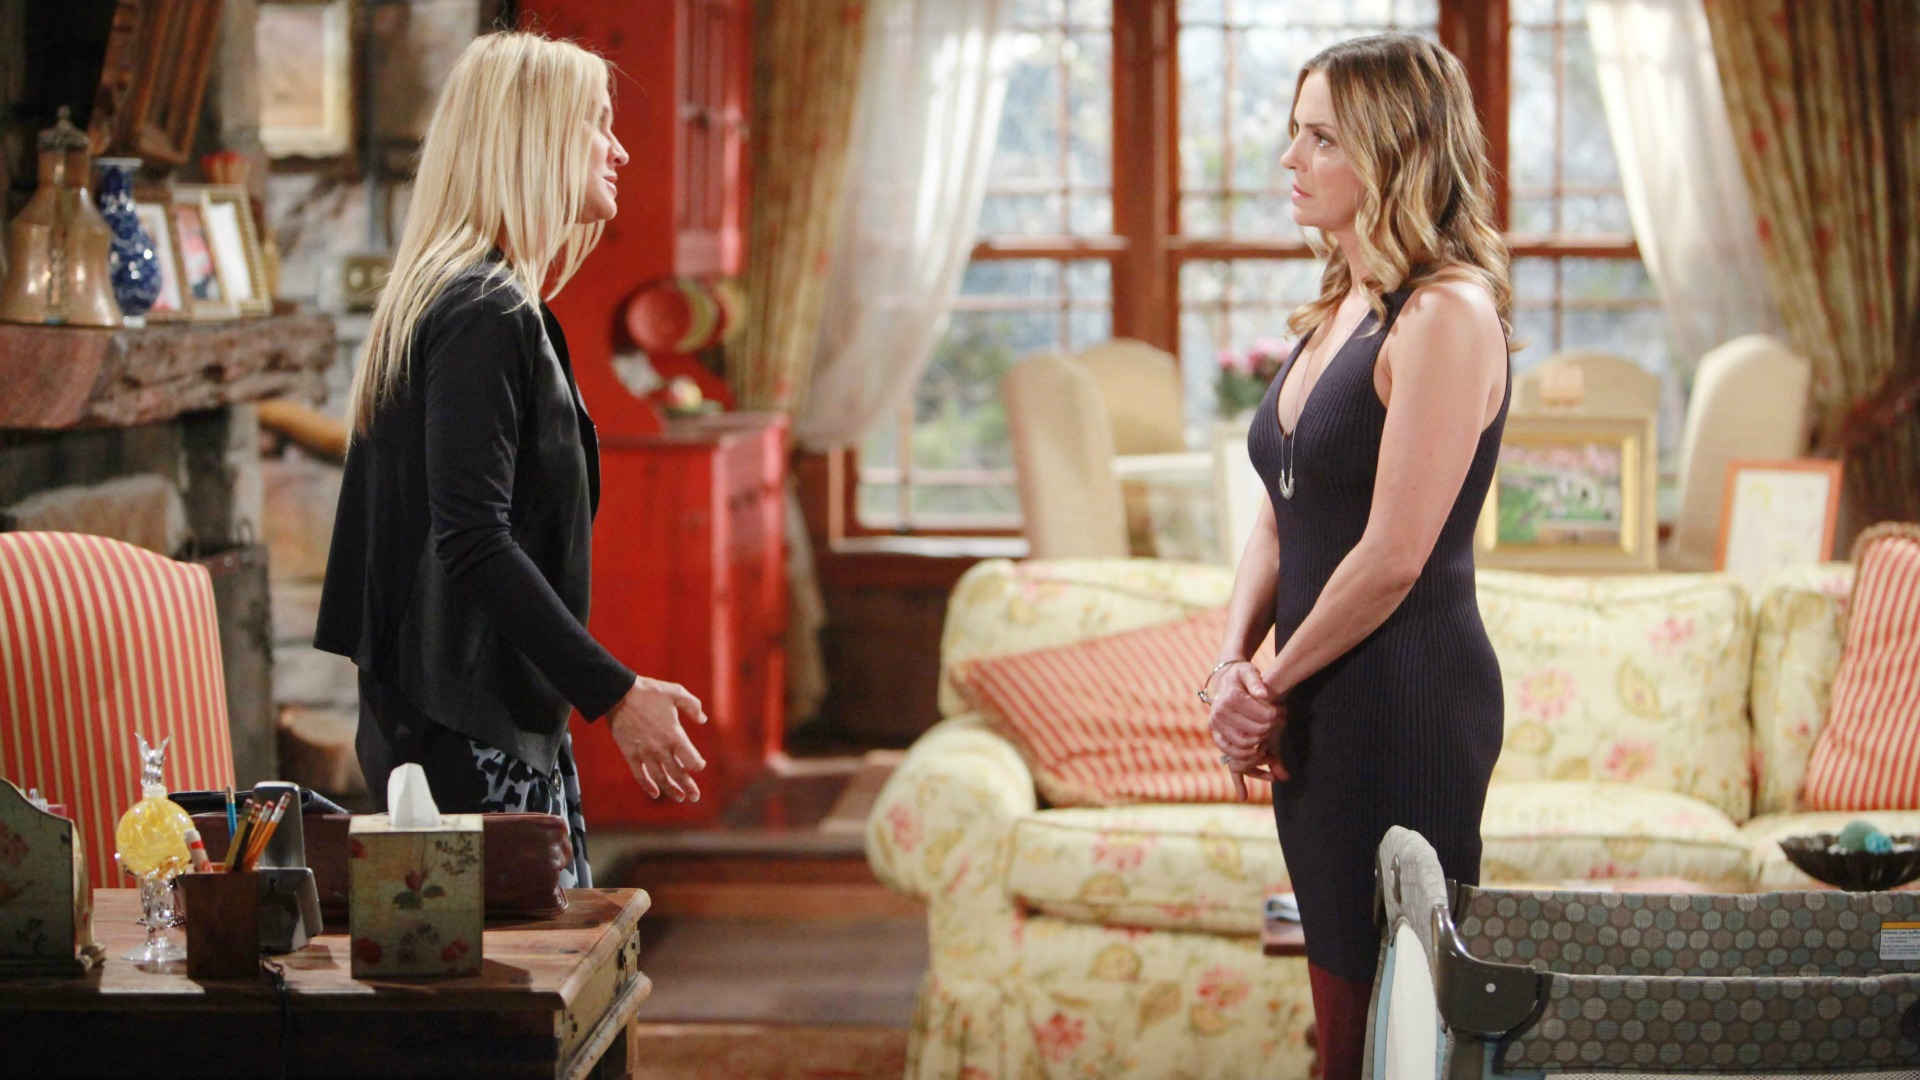 Sharon opens up to Sage.